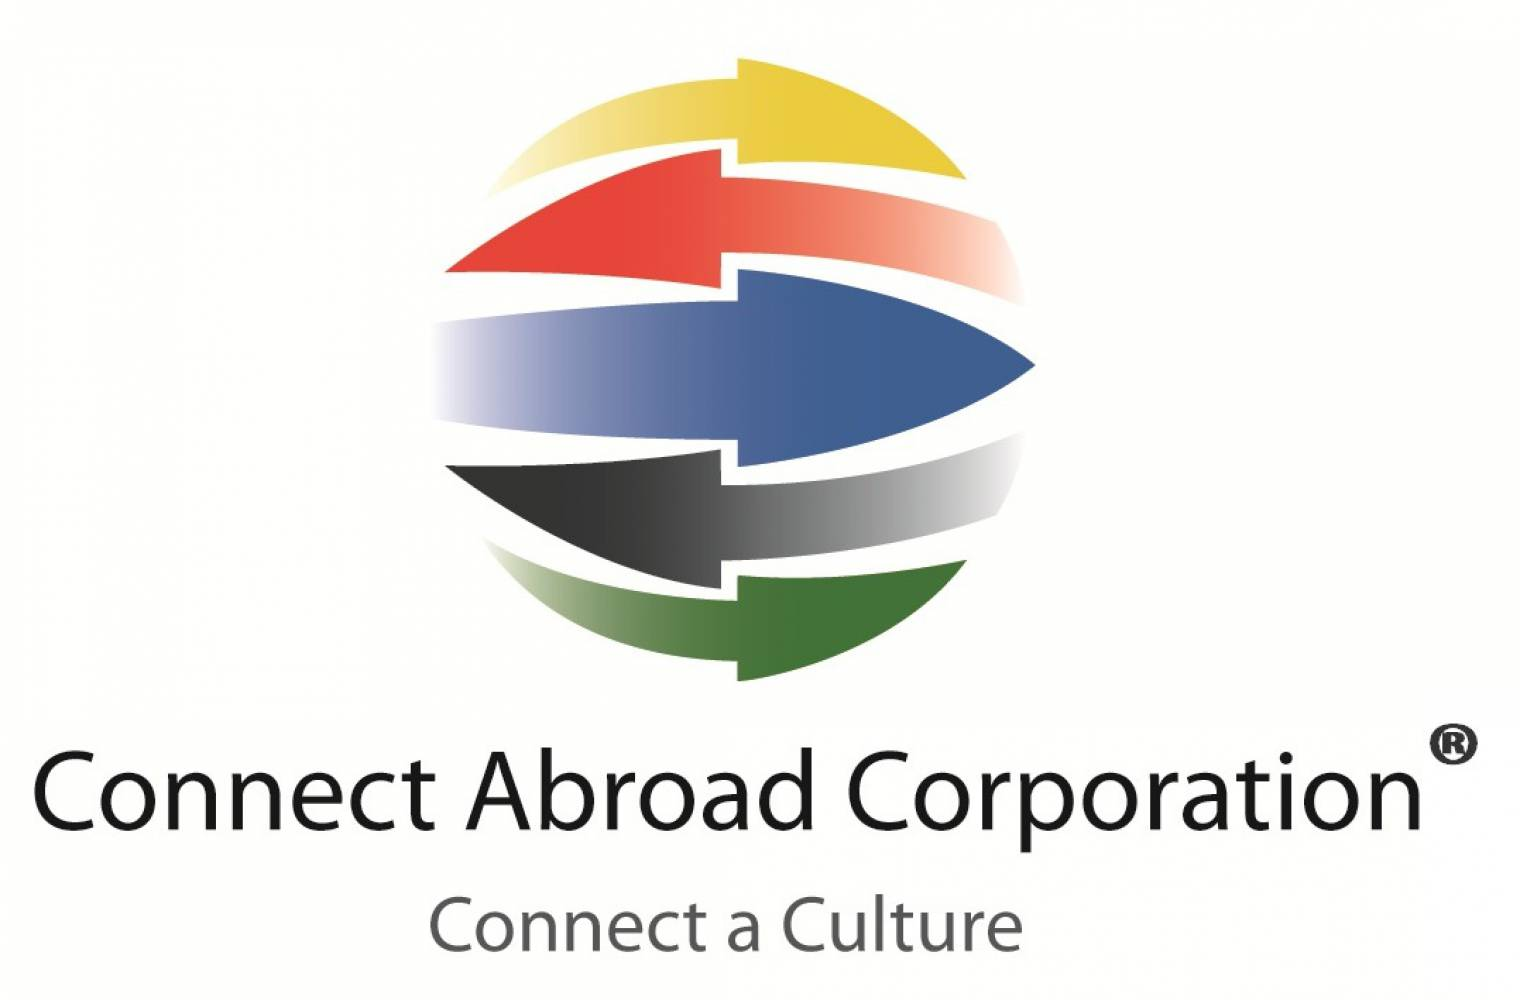 Welcome TM Connect Abroad Corporation as our newest IAPA Affiliate member